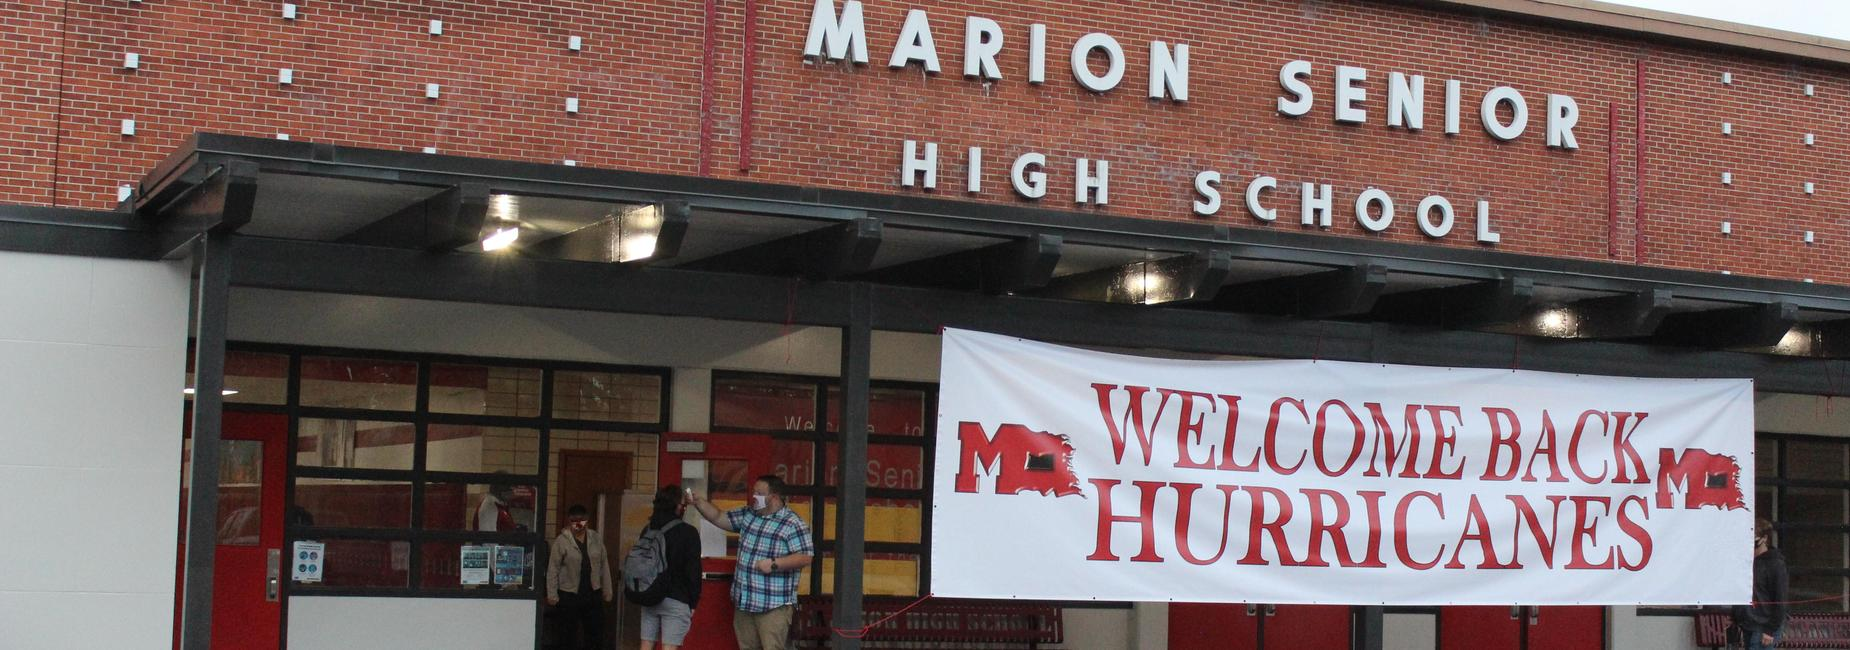 MSHS Welcome